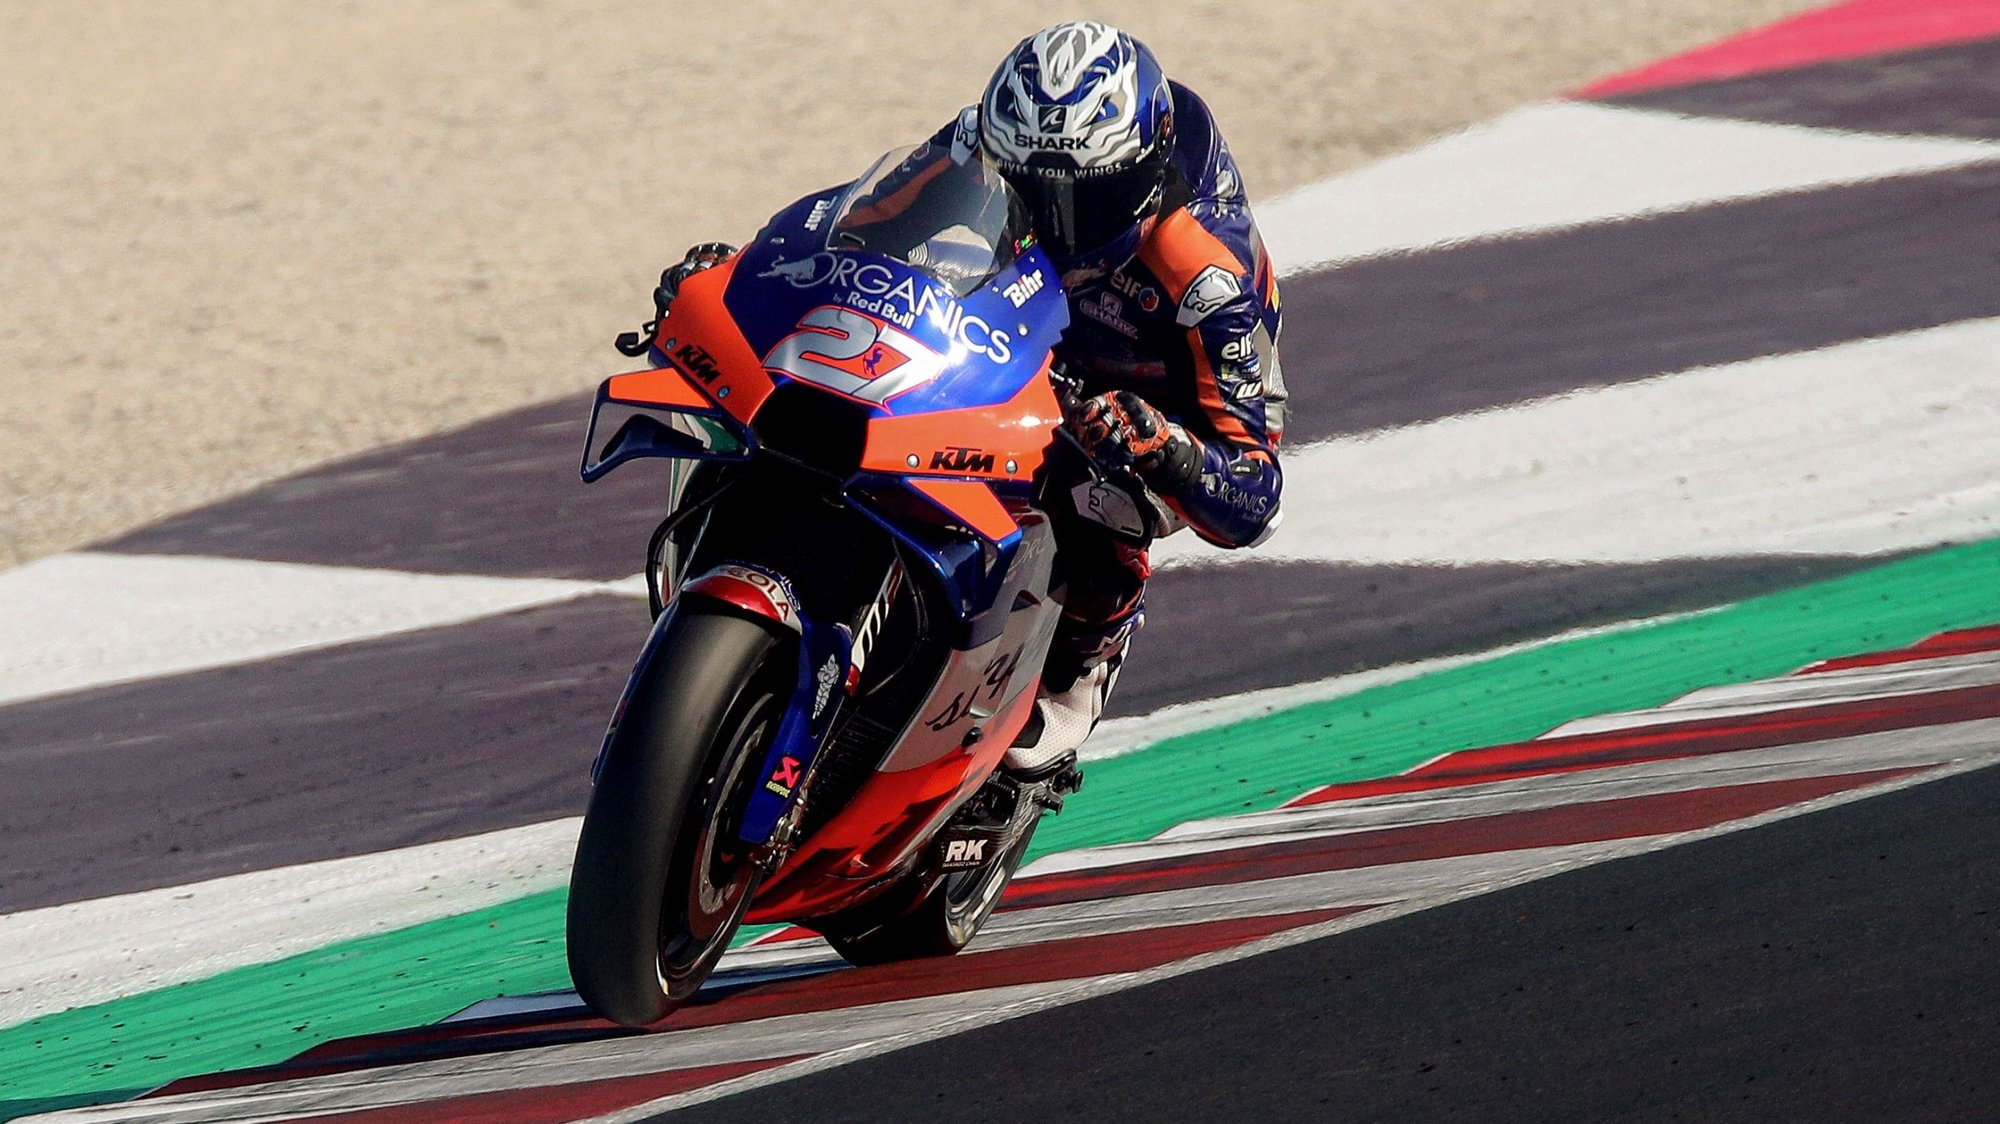 epa08665765 Spanish MotoGP rider Iker Lecuona of Red Bull KTM Tech 3 warms up for the motorcycling Grand Prix of San Marino at the Misano World Circuit Marco Simoncelli, Italy, 13 September 2020.  EPA/PASQUALE BOVE